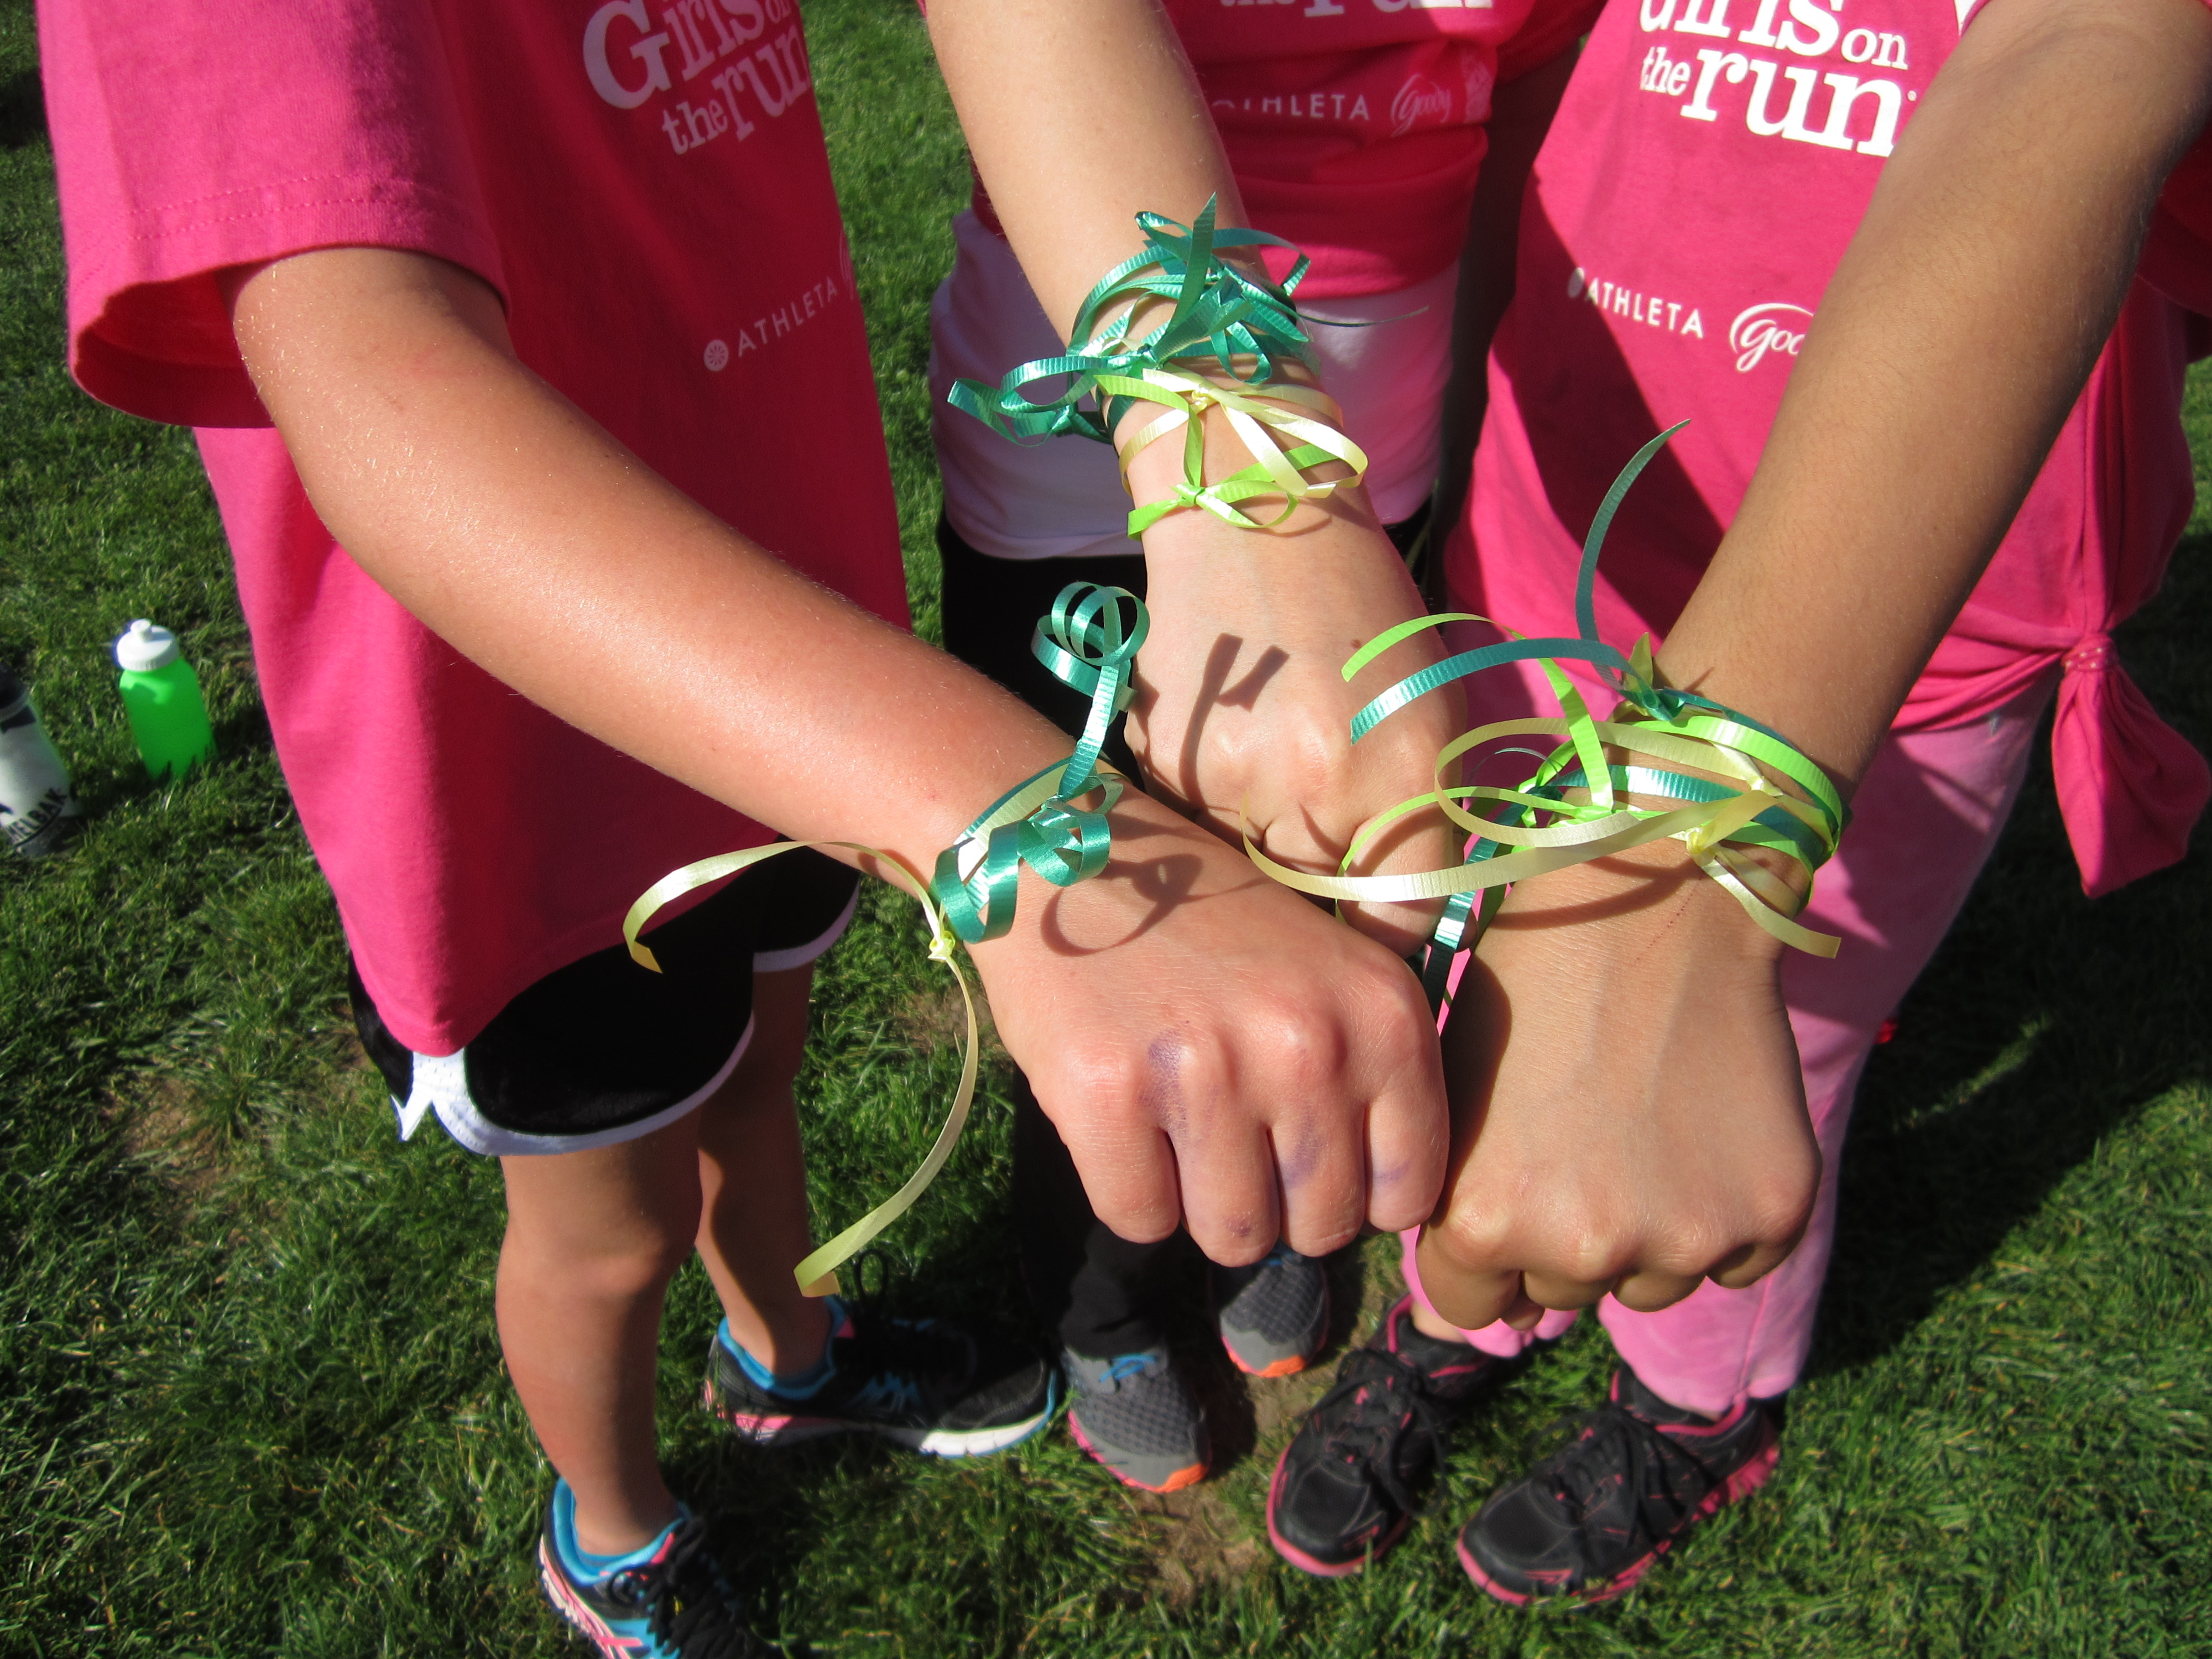 Girls on the Run girls wearing ribbon on their wrists and putting their hands together